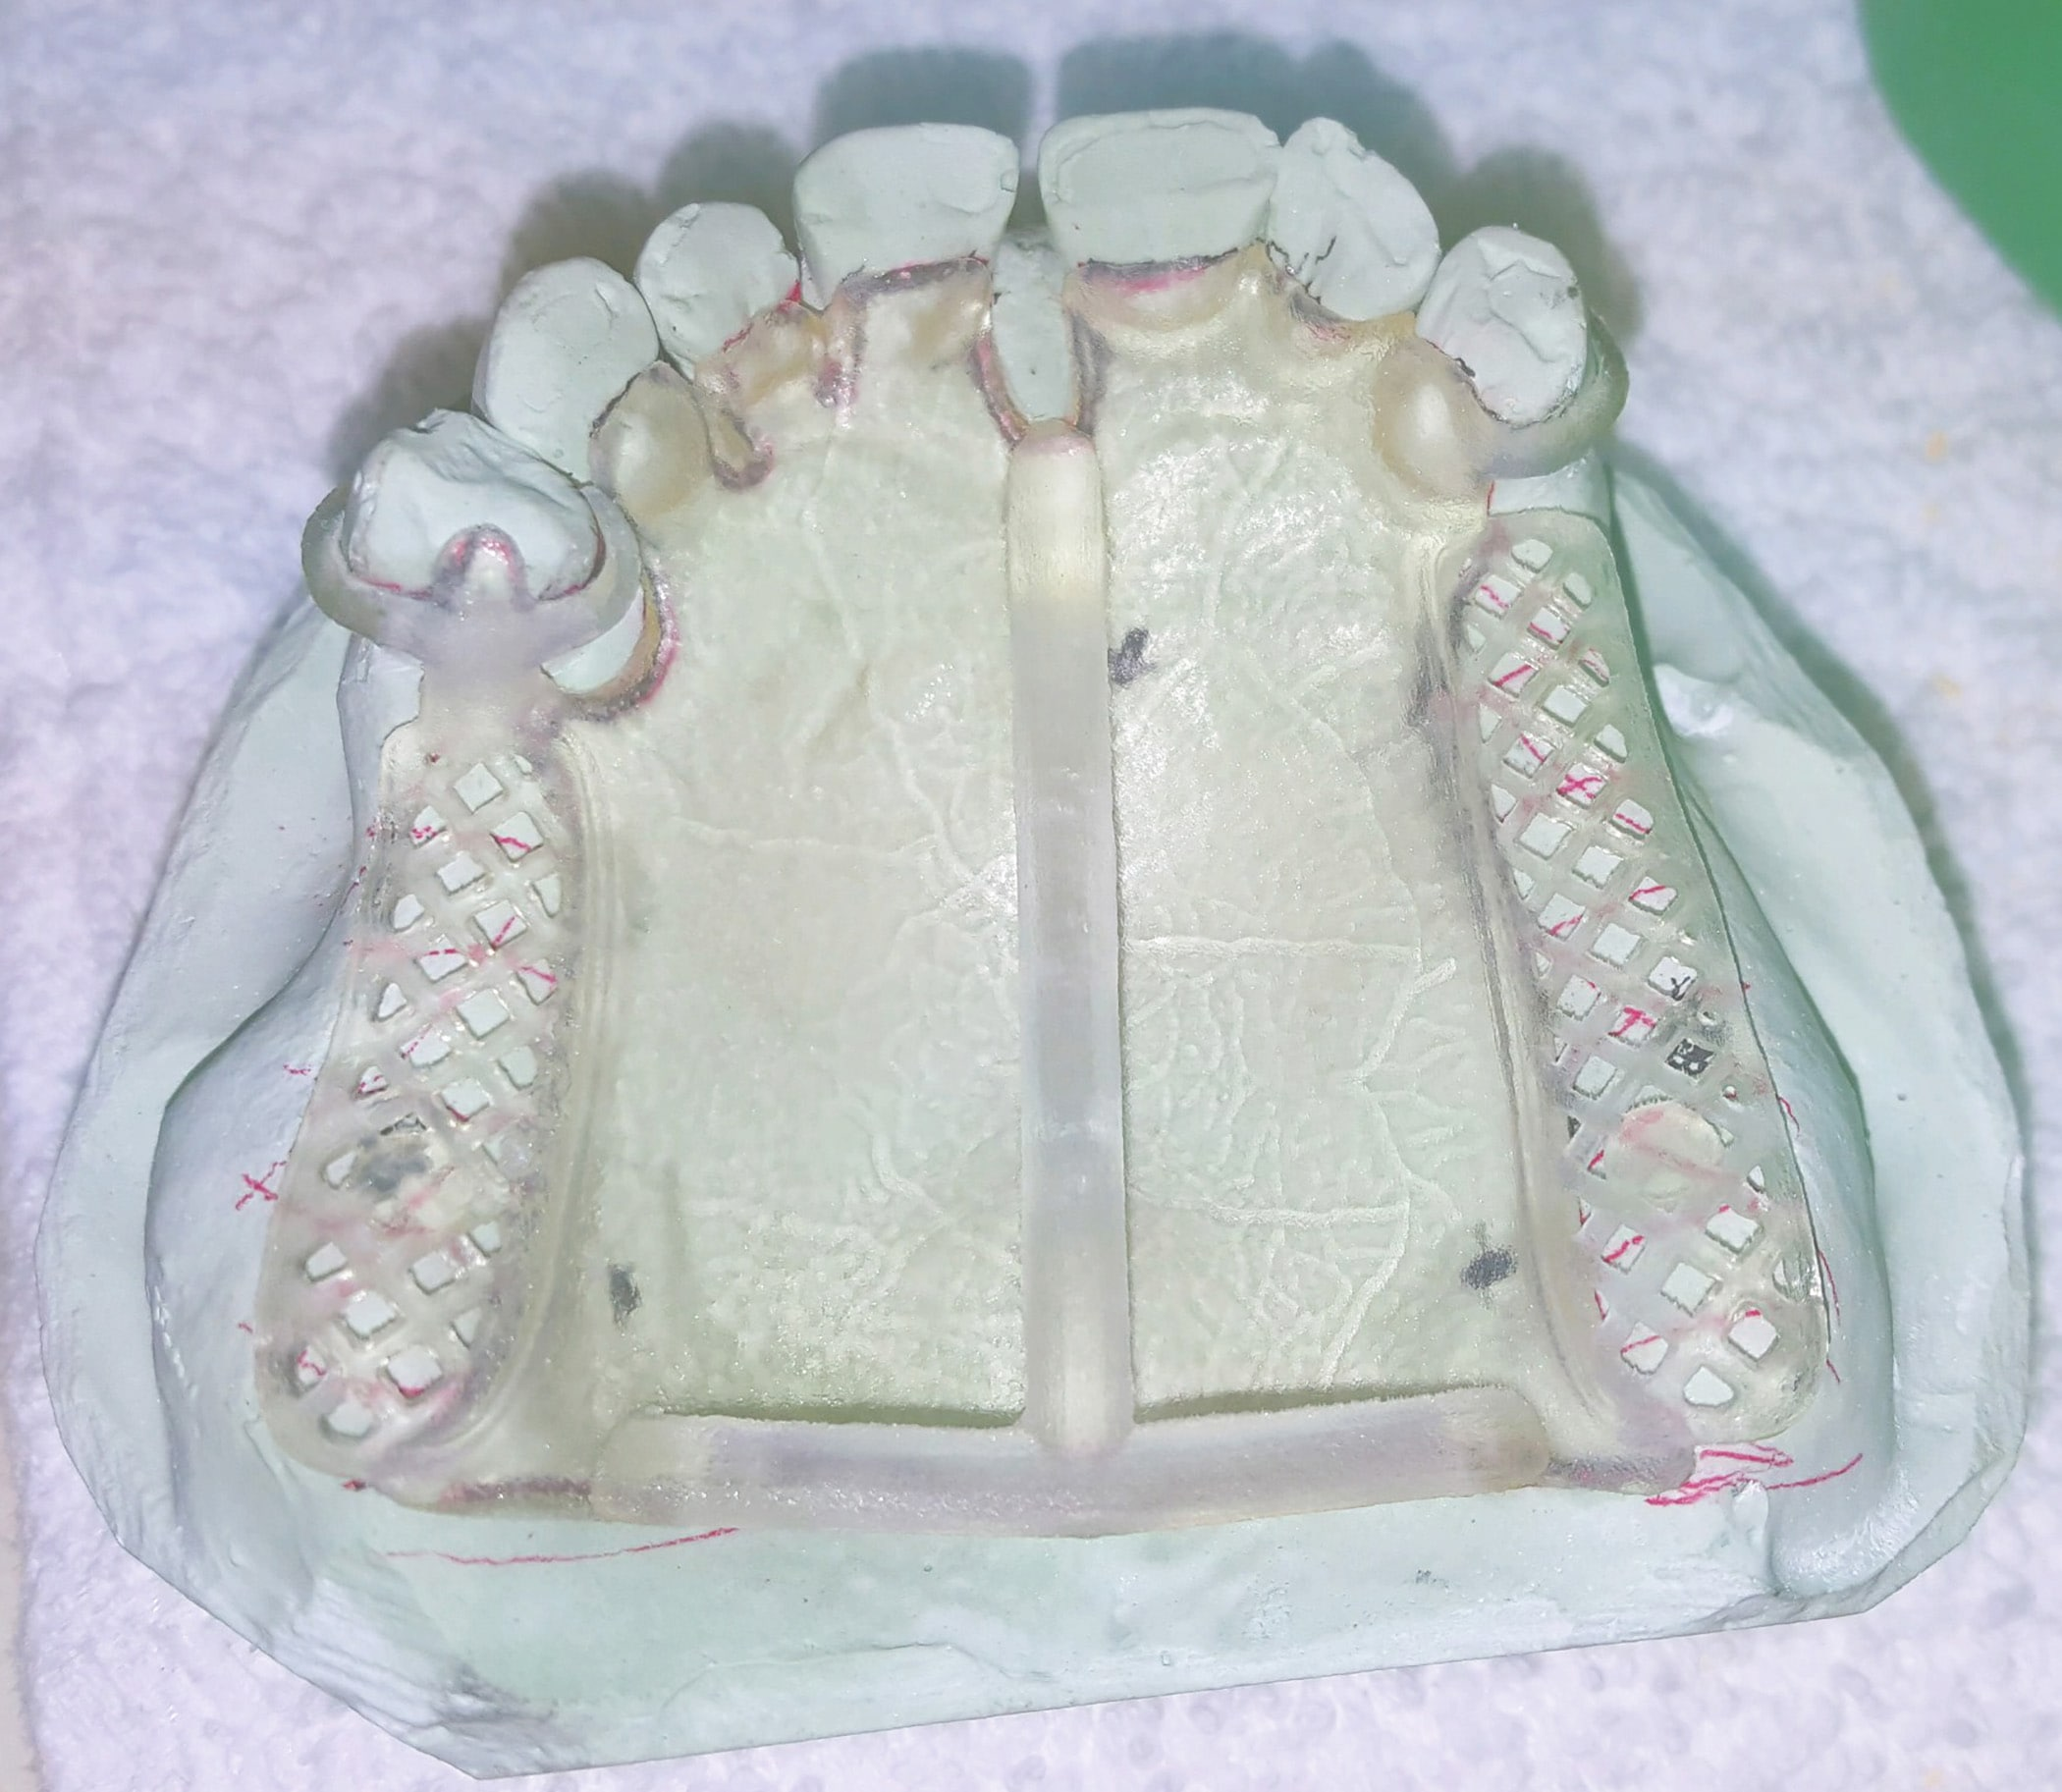 3d Printed partial framework on dental implant.